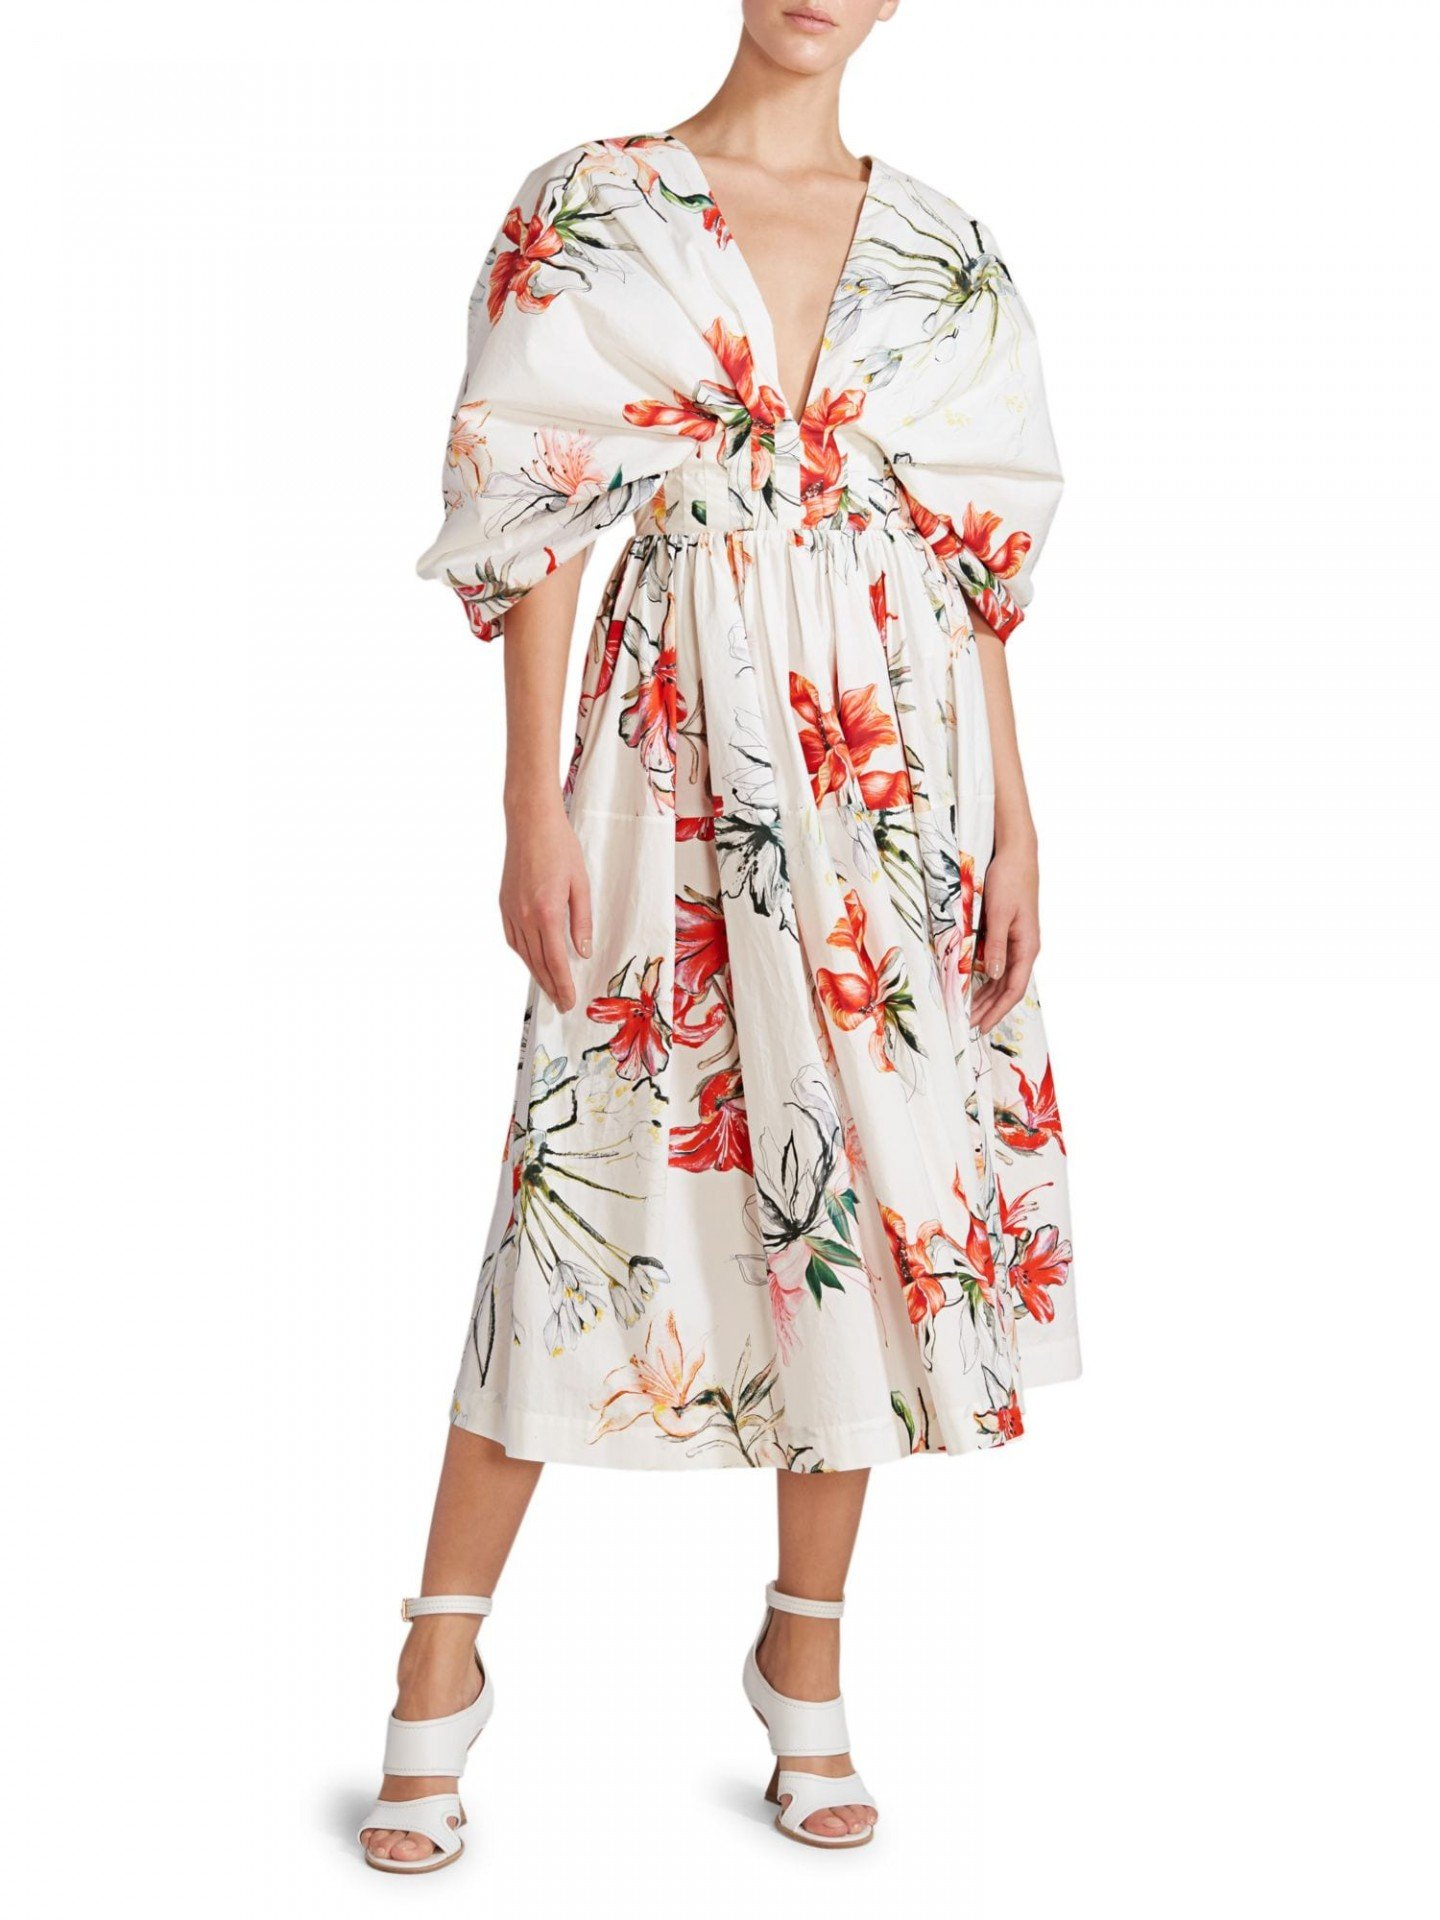 ALEXANDER MCQUEEN Printed Eternal Florals Midi Dress